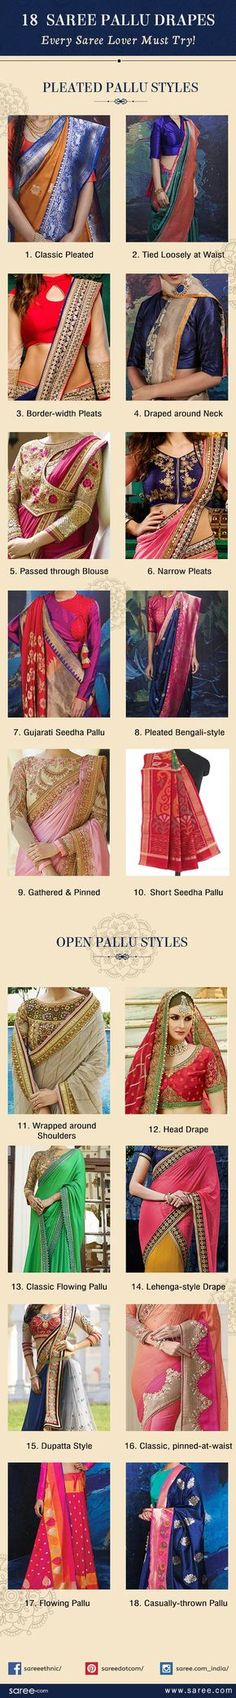 Add extra oomph to your saree style with these gorgeous saree pallu drapes. Pick practical, easy to carry ones or fancy, grand saree pallu draping styles. Ethnic Fashion, Indian Fashion, Girl Fashion, Fashion Tag, Fashion Outfits, Saree Draping Styles, Saree Styles, Blouse Styles, Saree Blouse Patterns